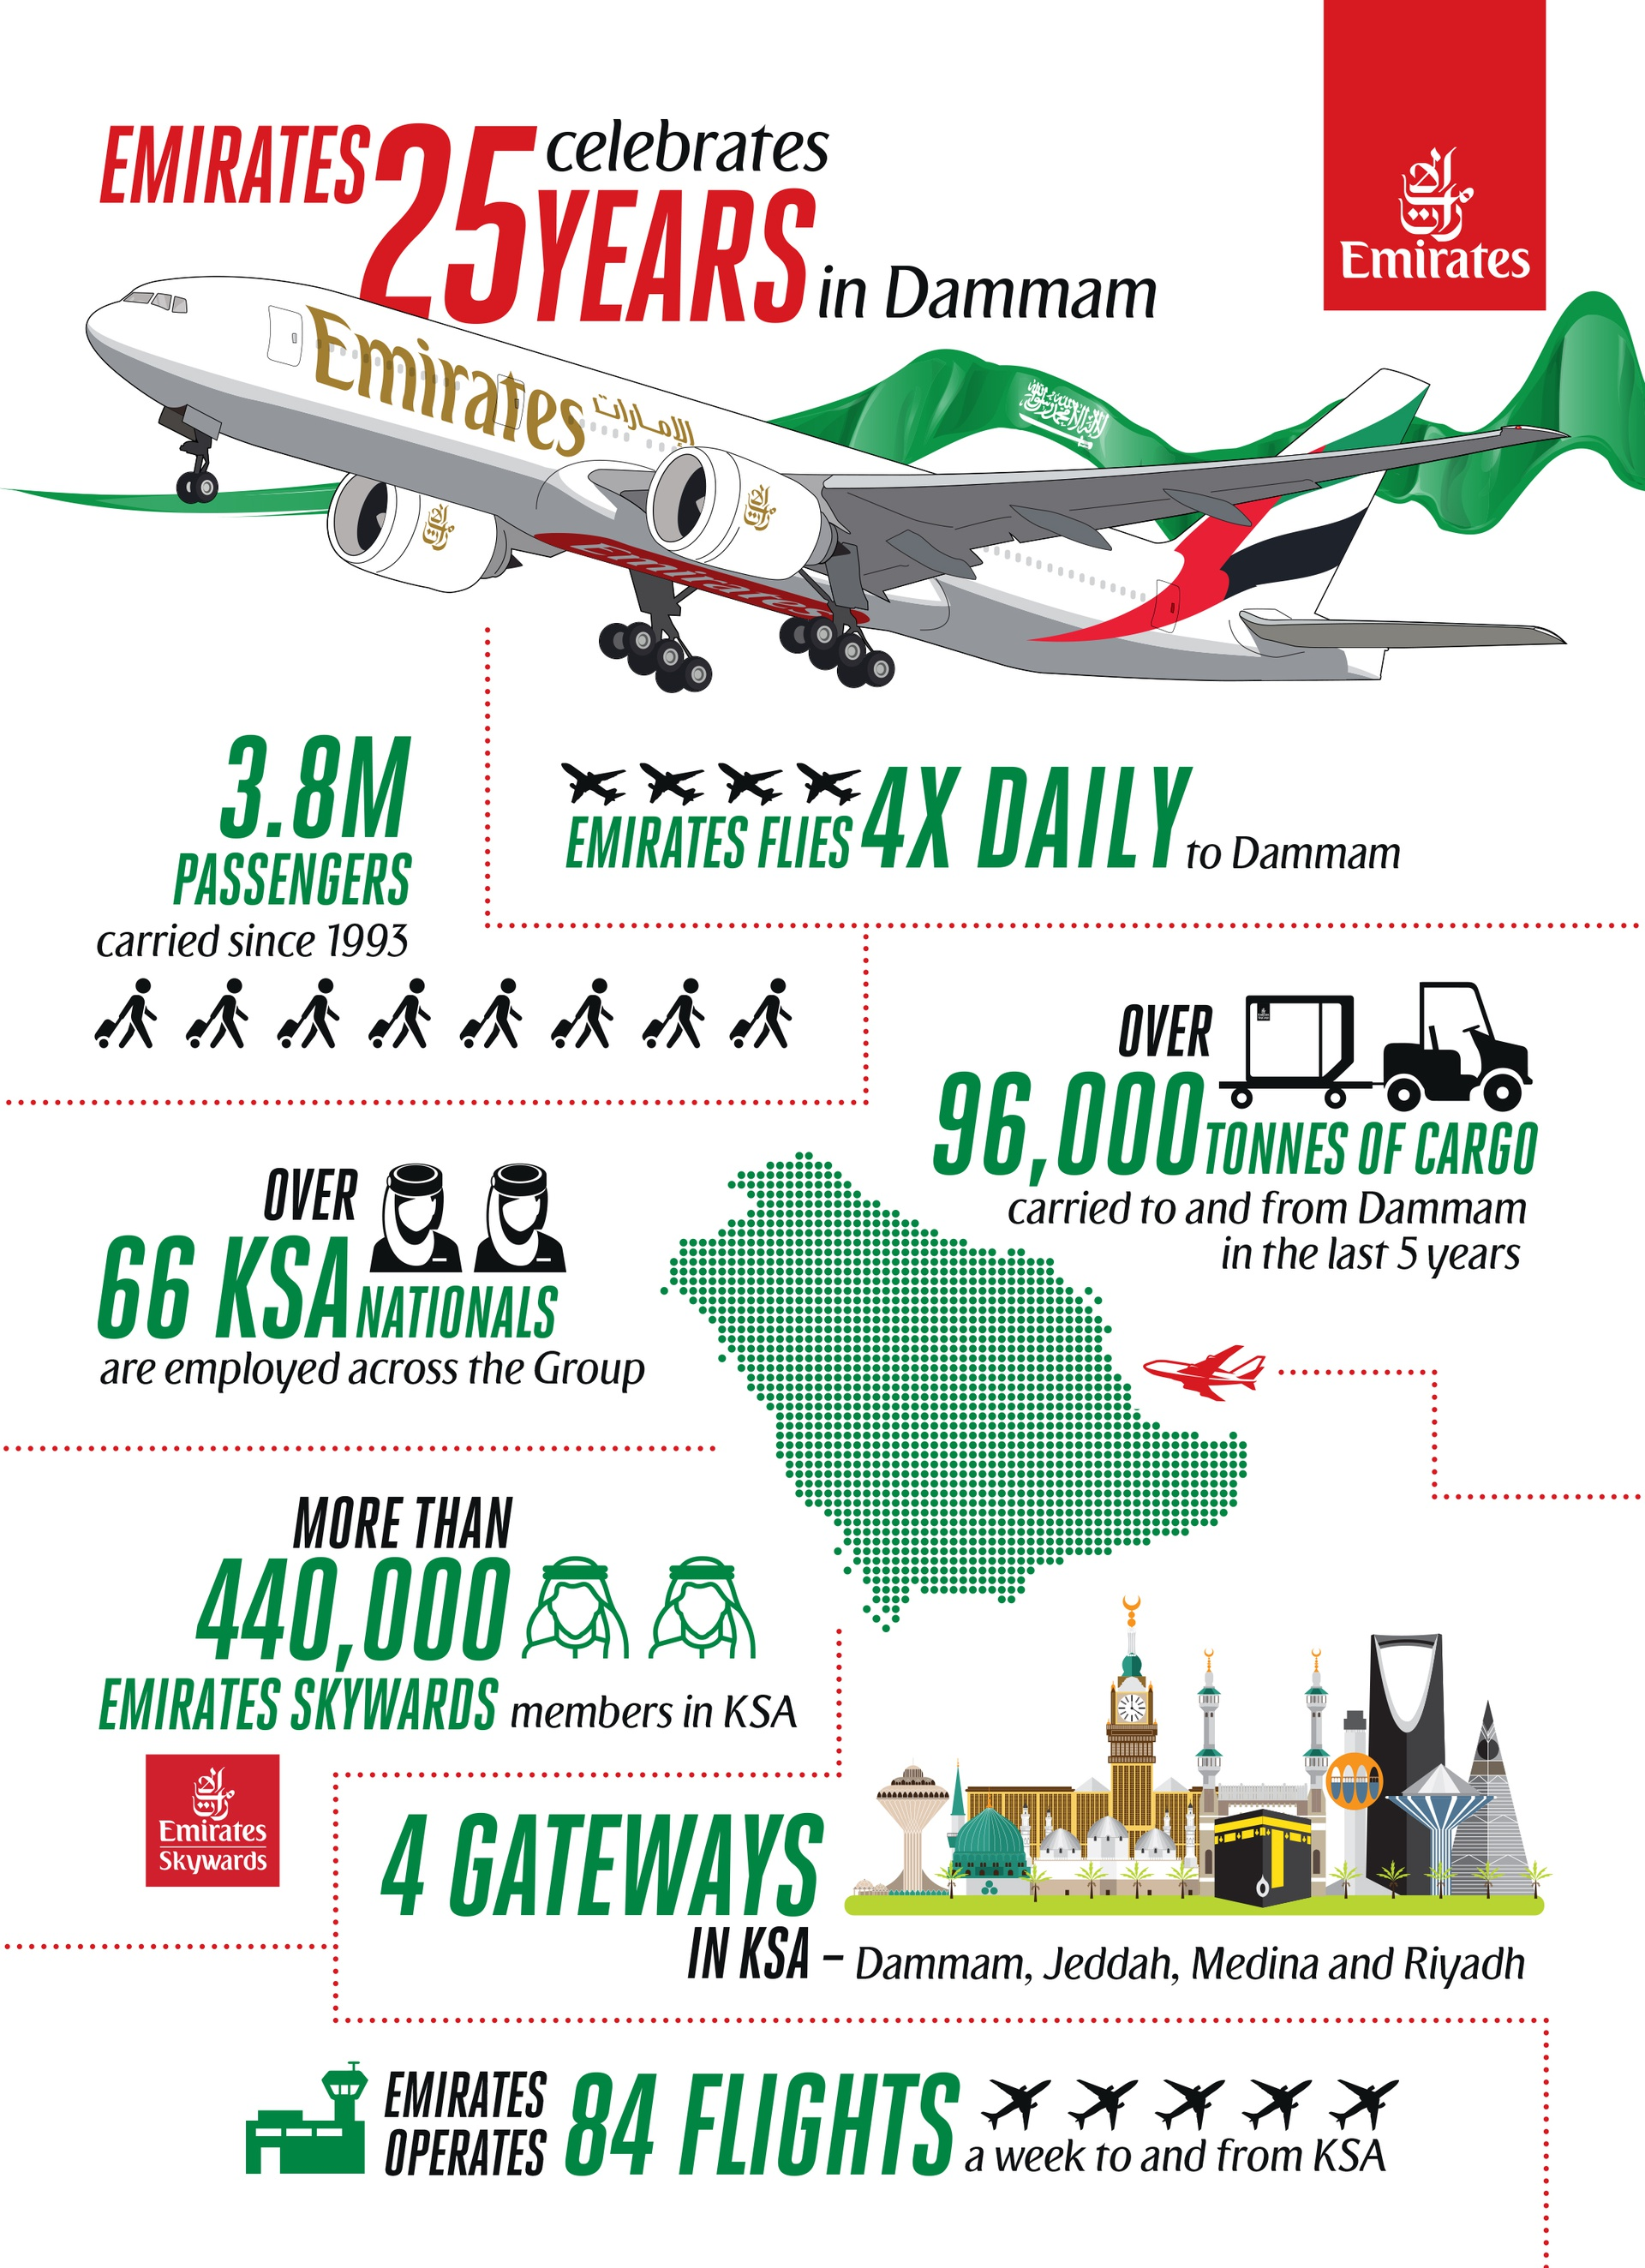 Emirates, the world's largest international airline, is celebrating its 25th anniversary to Dammam.